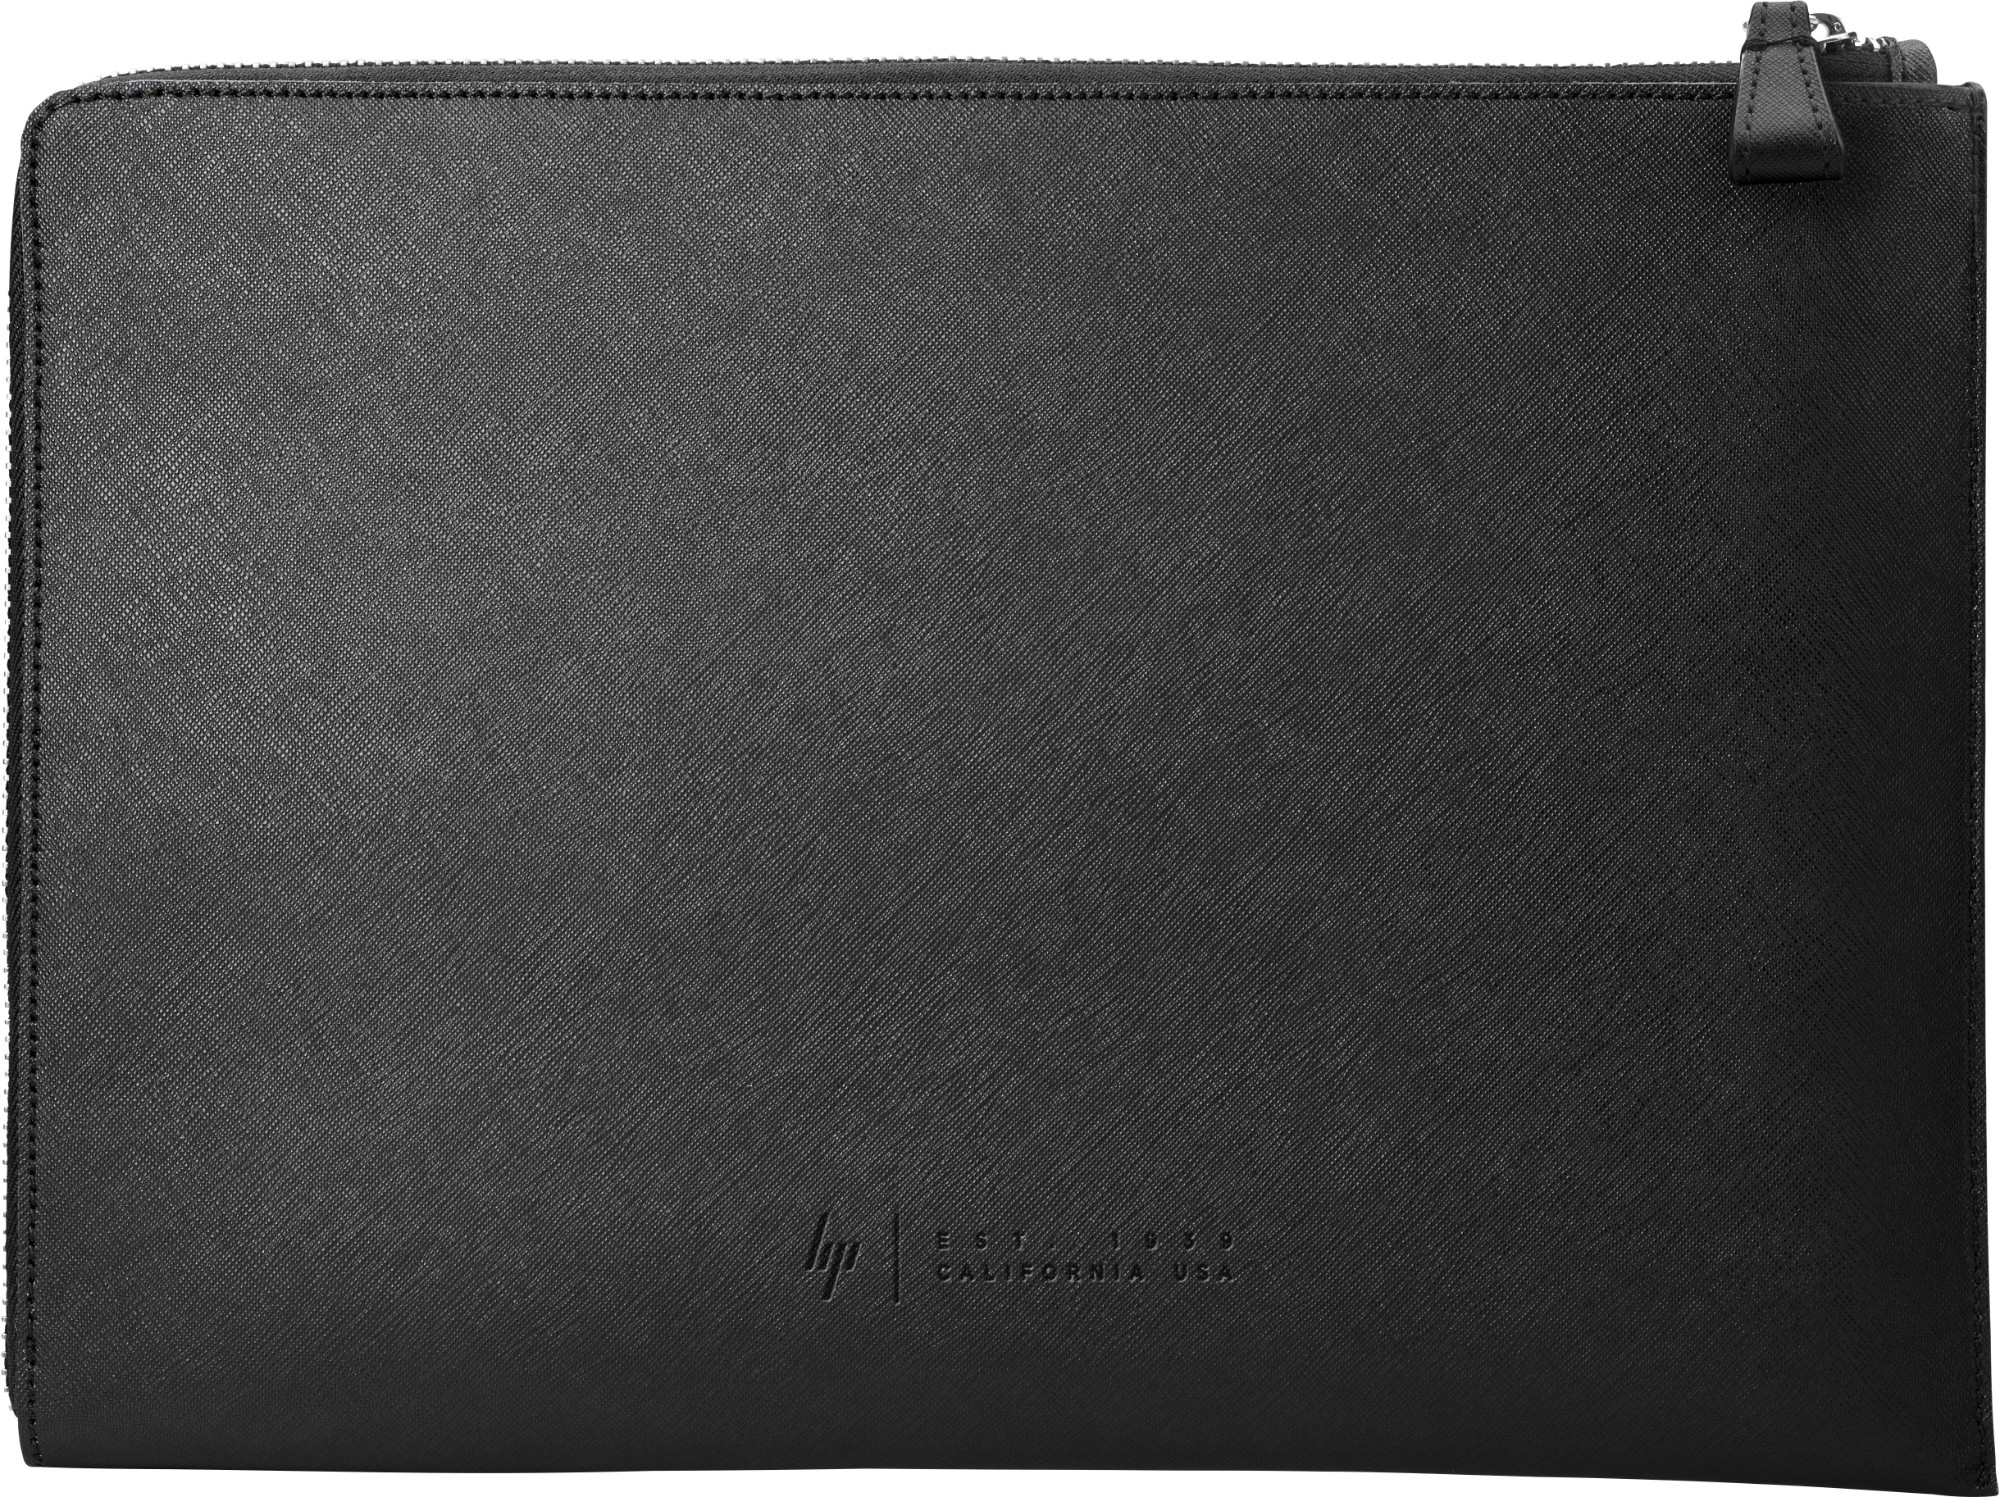 "HP Elite 12.5 Black Leather Sleeve maletines para portátil 31,8 cm (12.5"") Funda Negro"